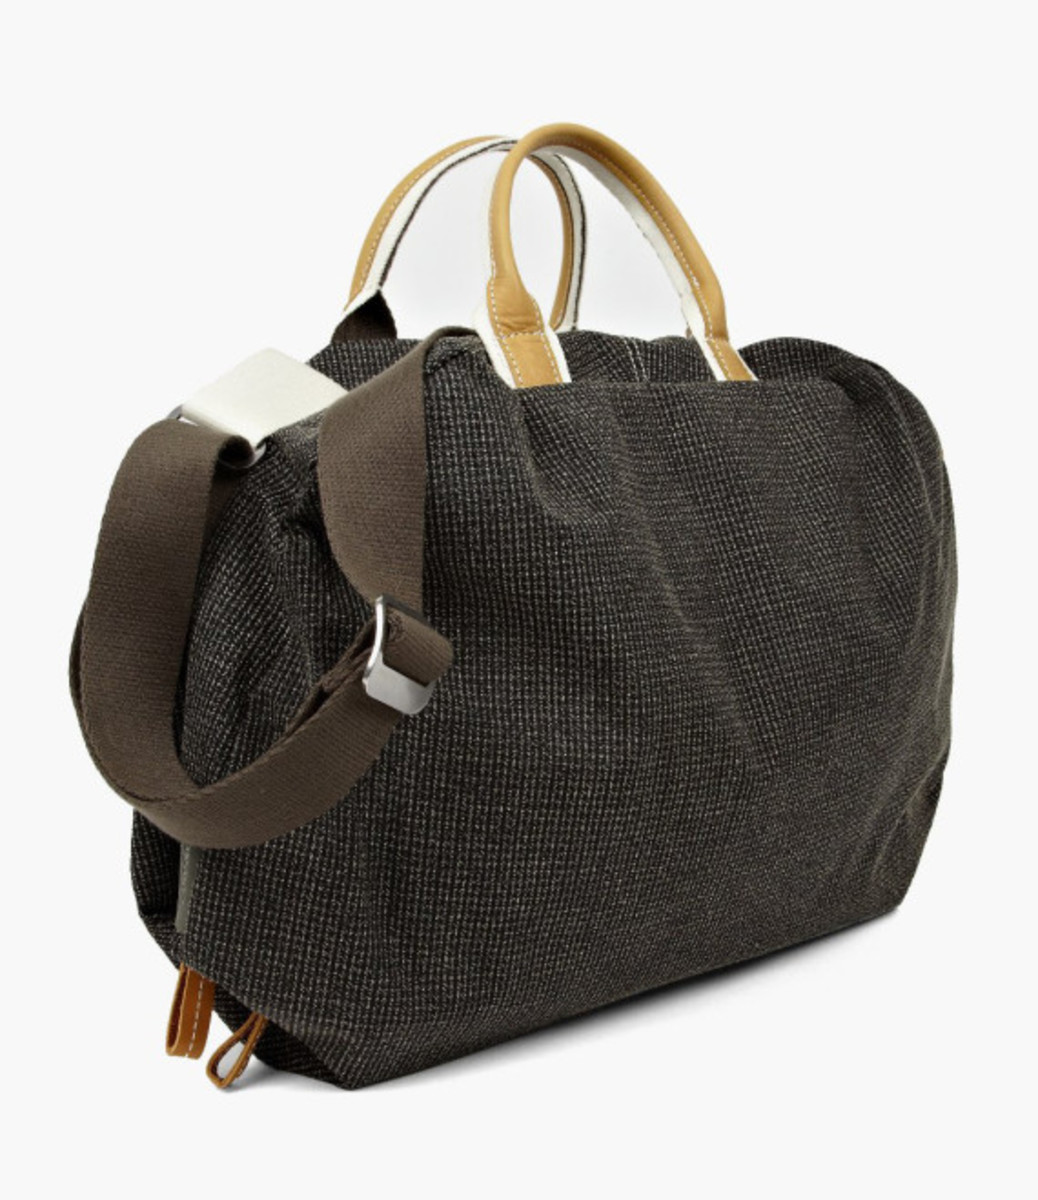 cote-and-ciel-seine-bowling-bag-02